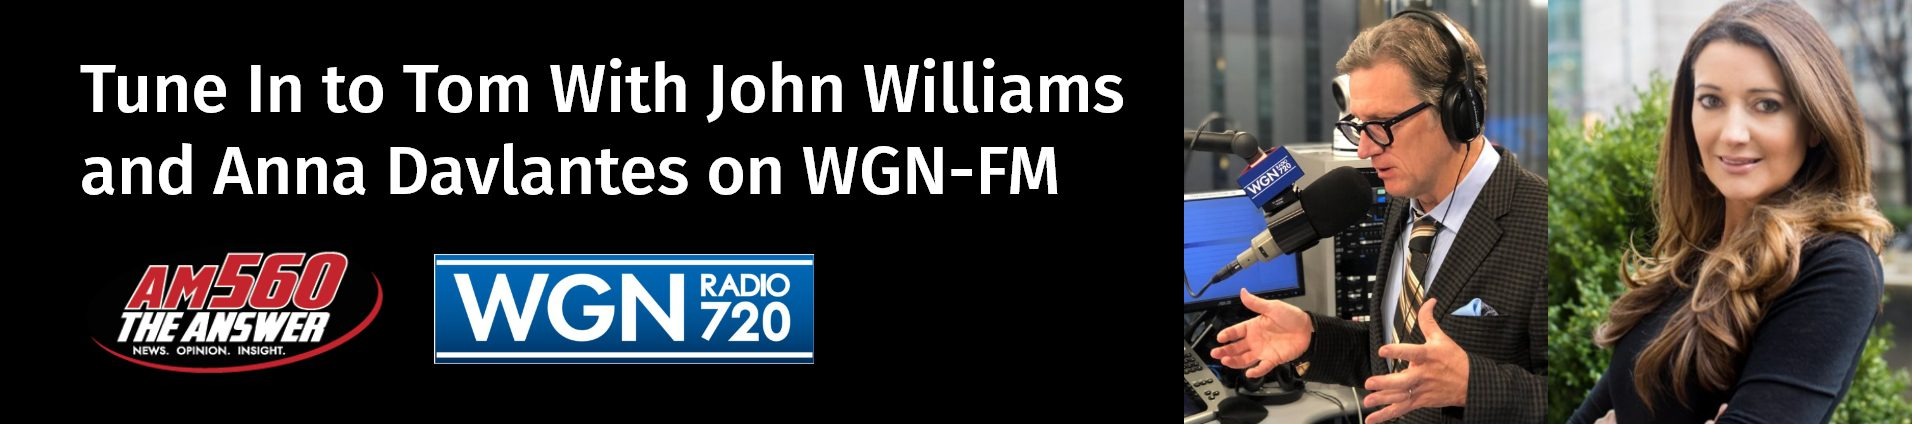 banner: Tune In to Tom With John Williams and Anna Davlantes on WGN-FM